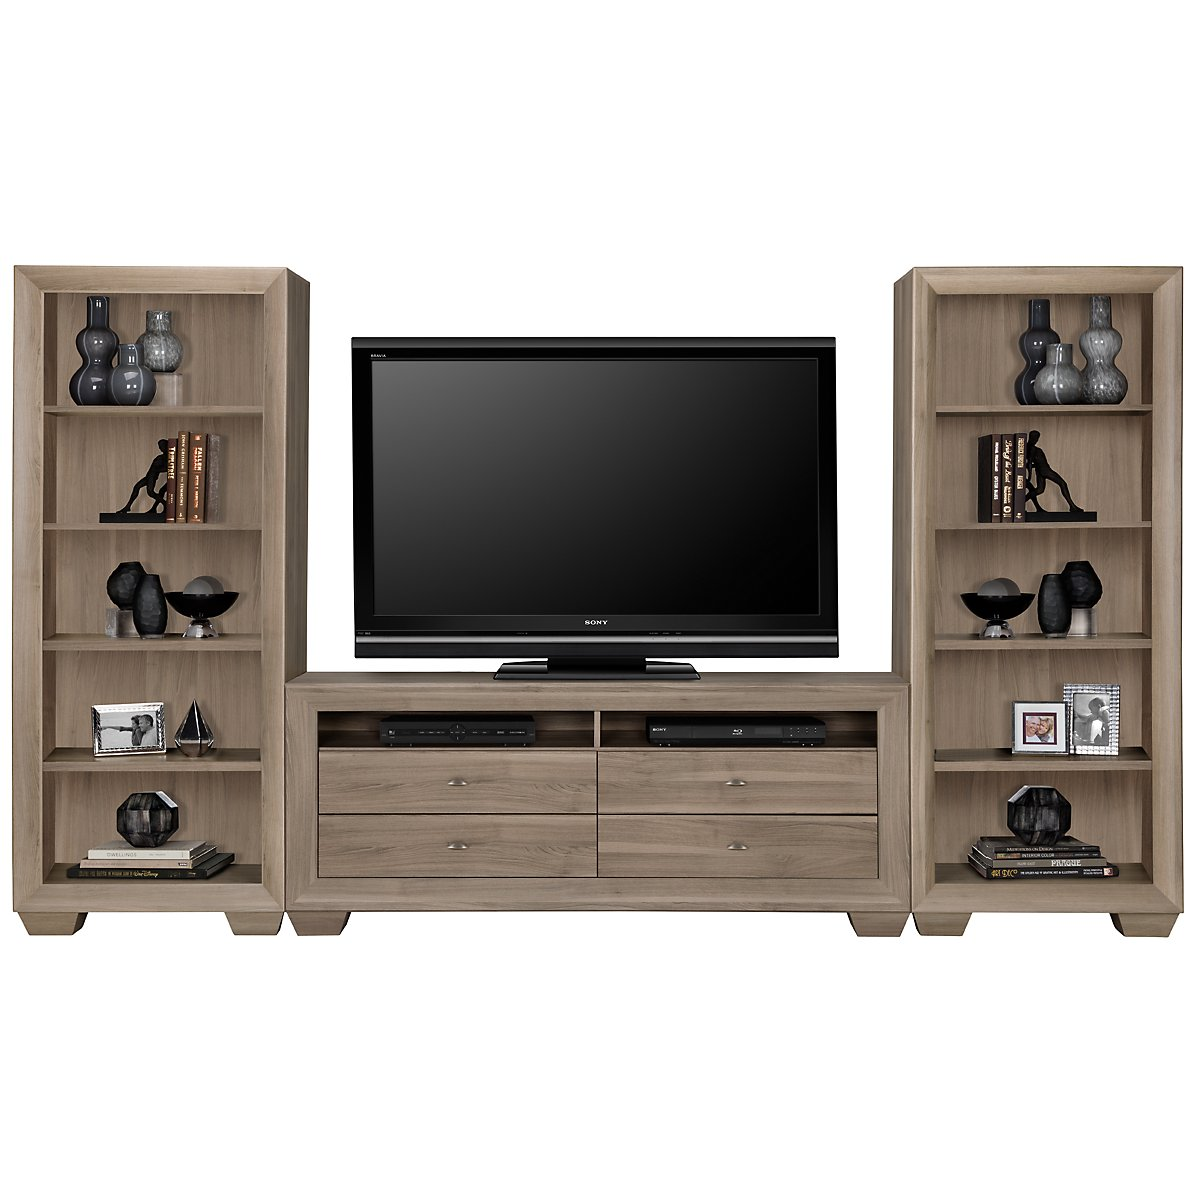 Adele2 Light Tone Wood Entertainment Wall